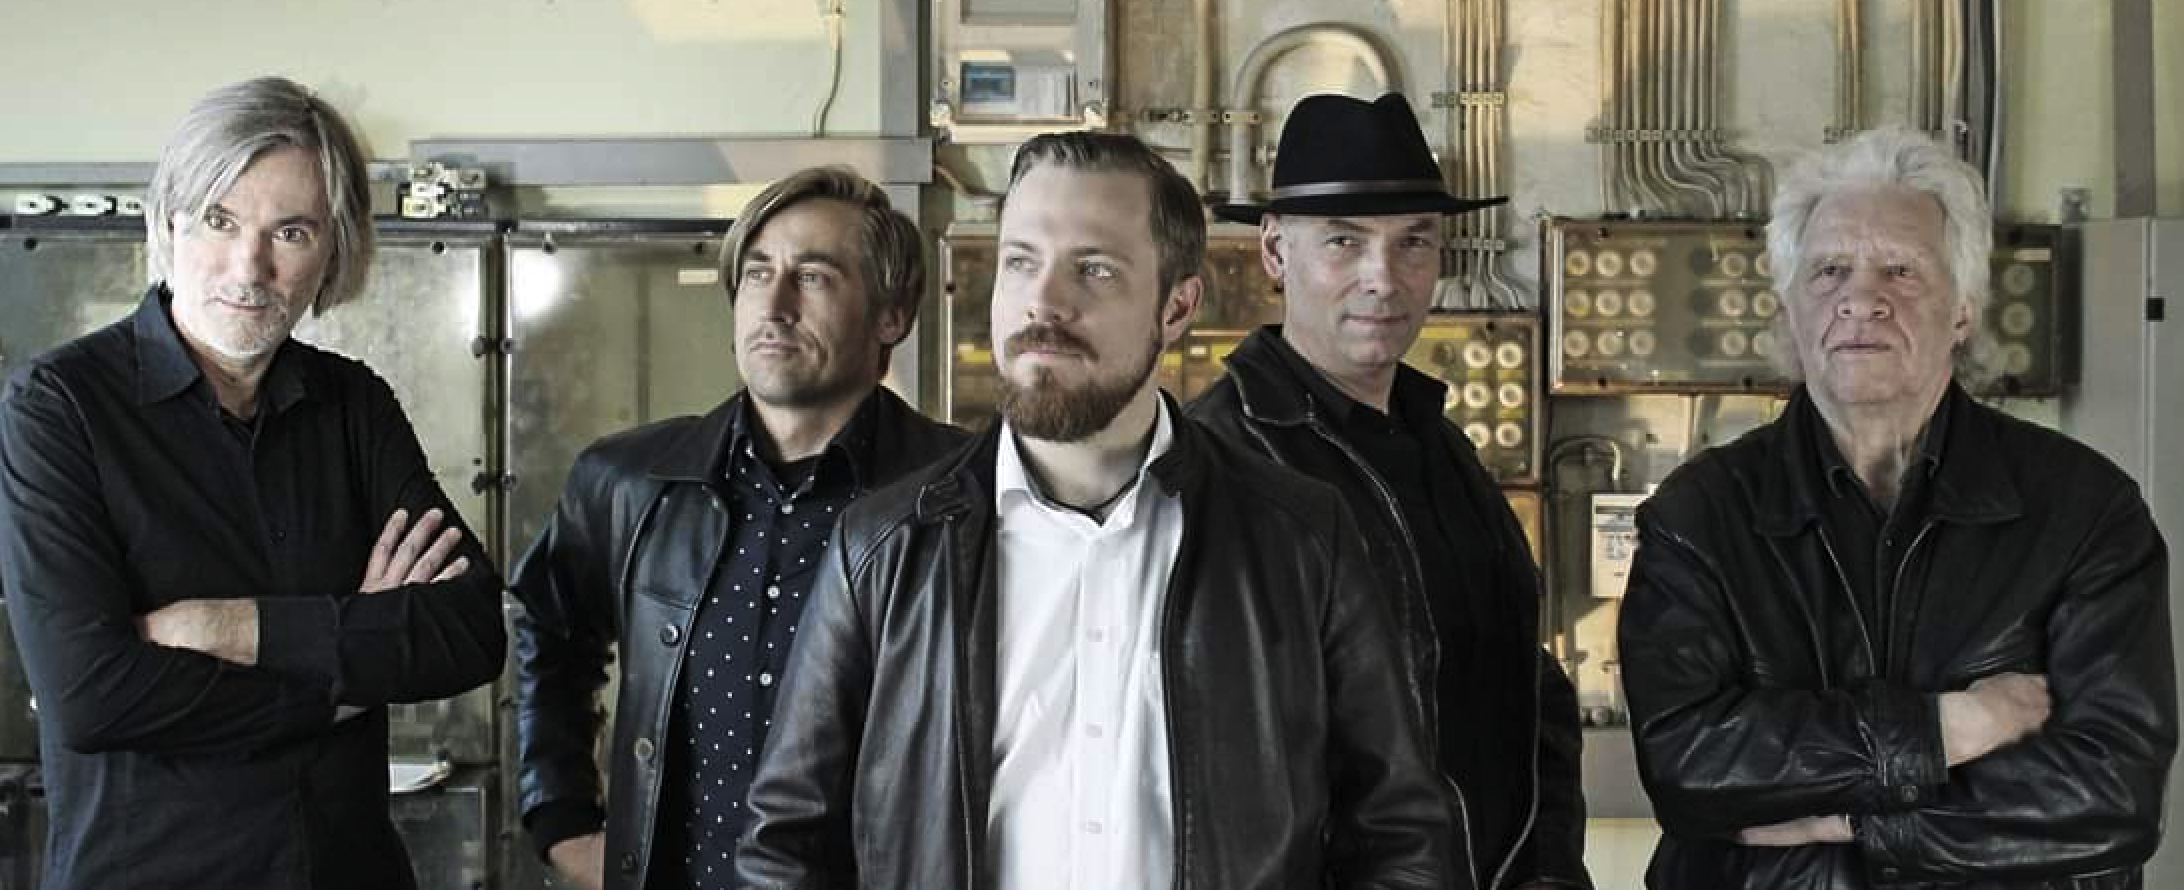 Konzert mit The Bluenotes